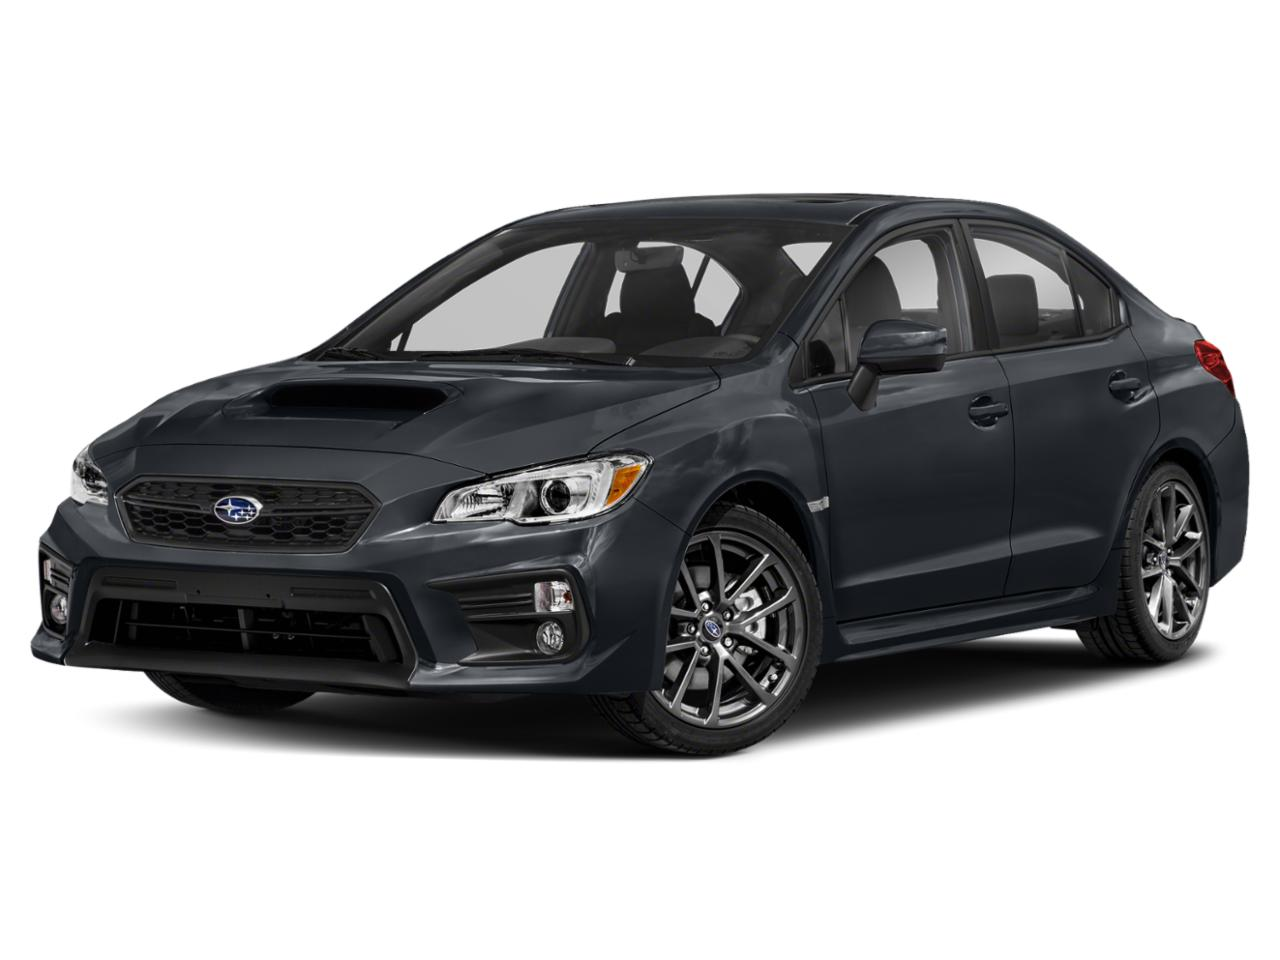 2018 Subaru WRX Vehicle Photo in Portland, OR 97225